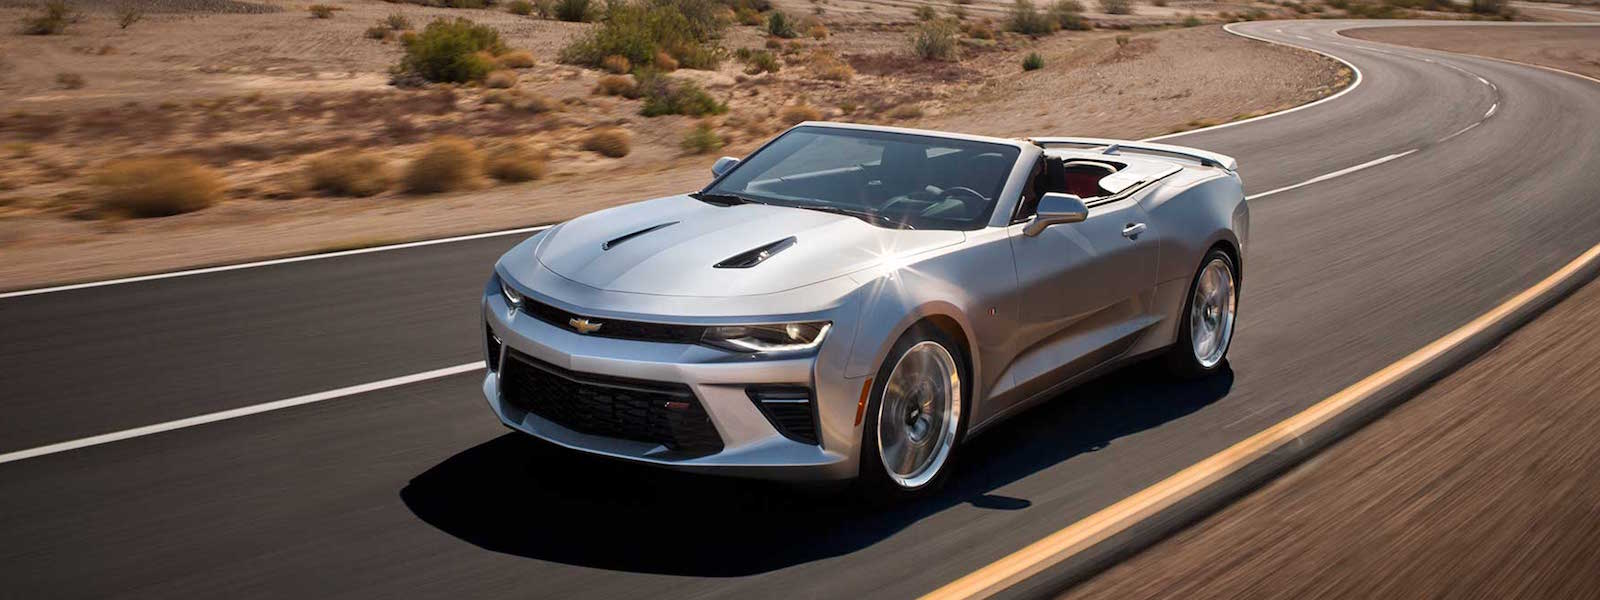 A silver 2016 Chevy Camaro is driving on a winding desert road.